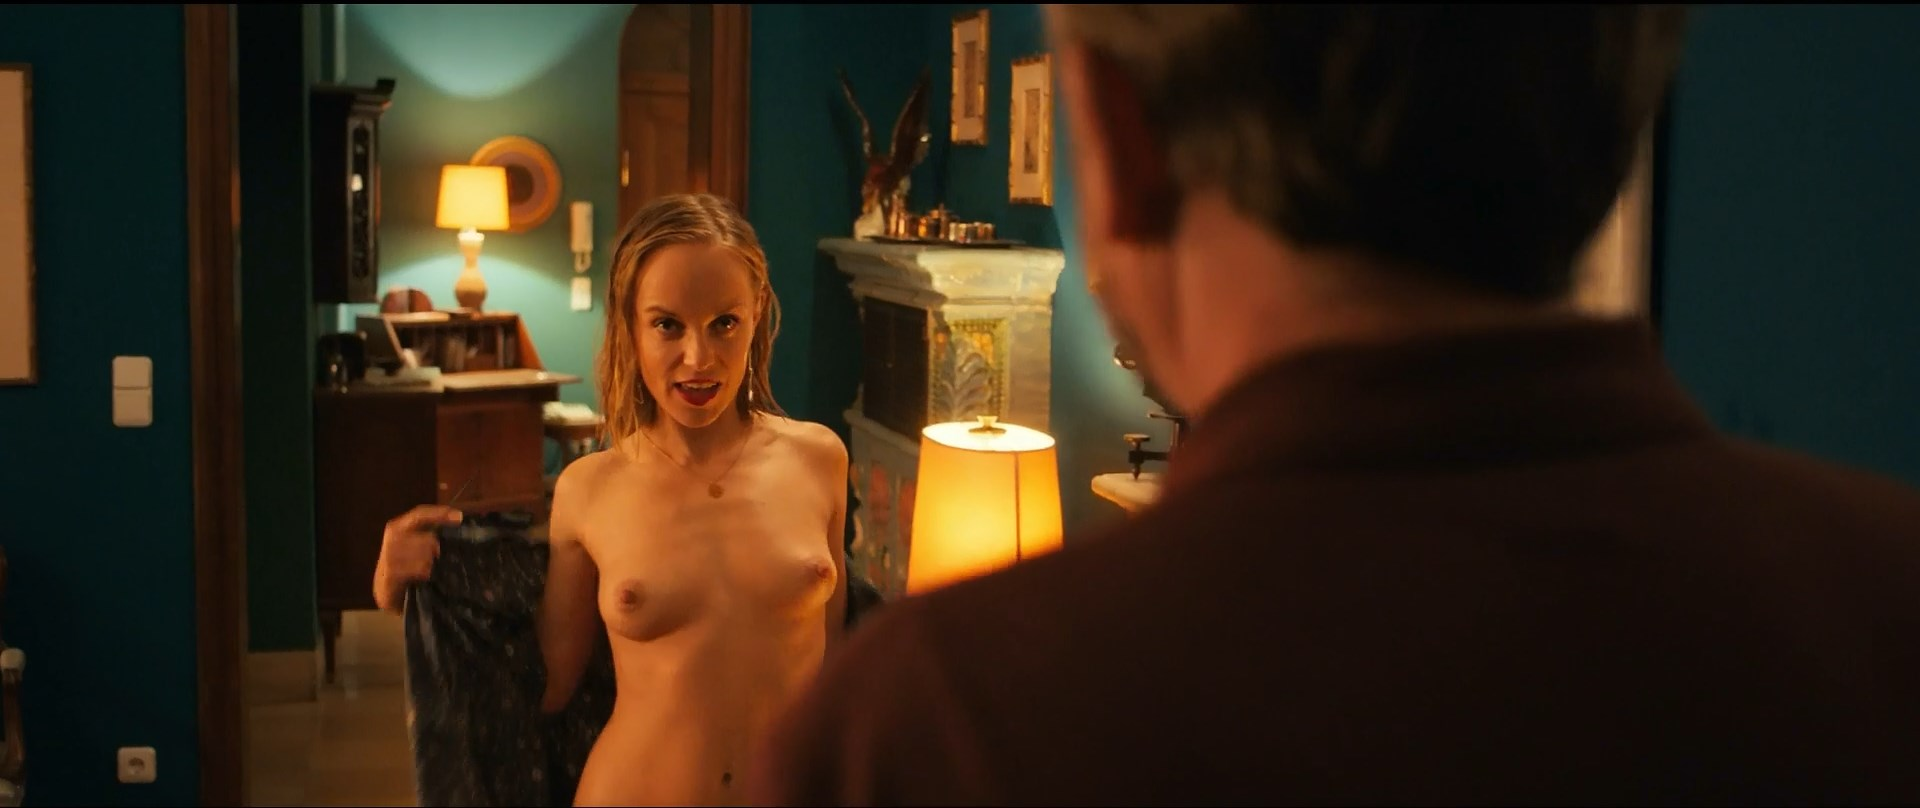 Your place Friederike kempter nude suggest you